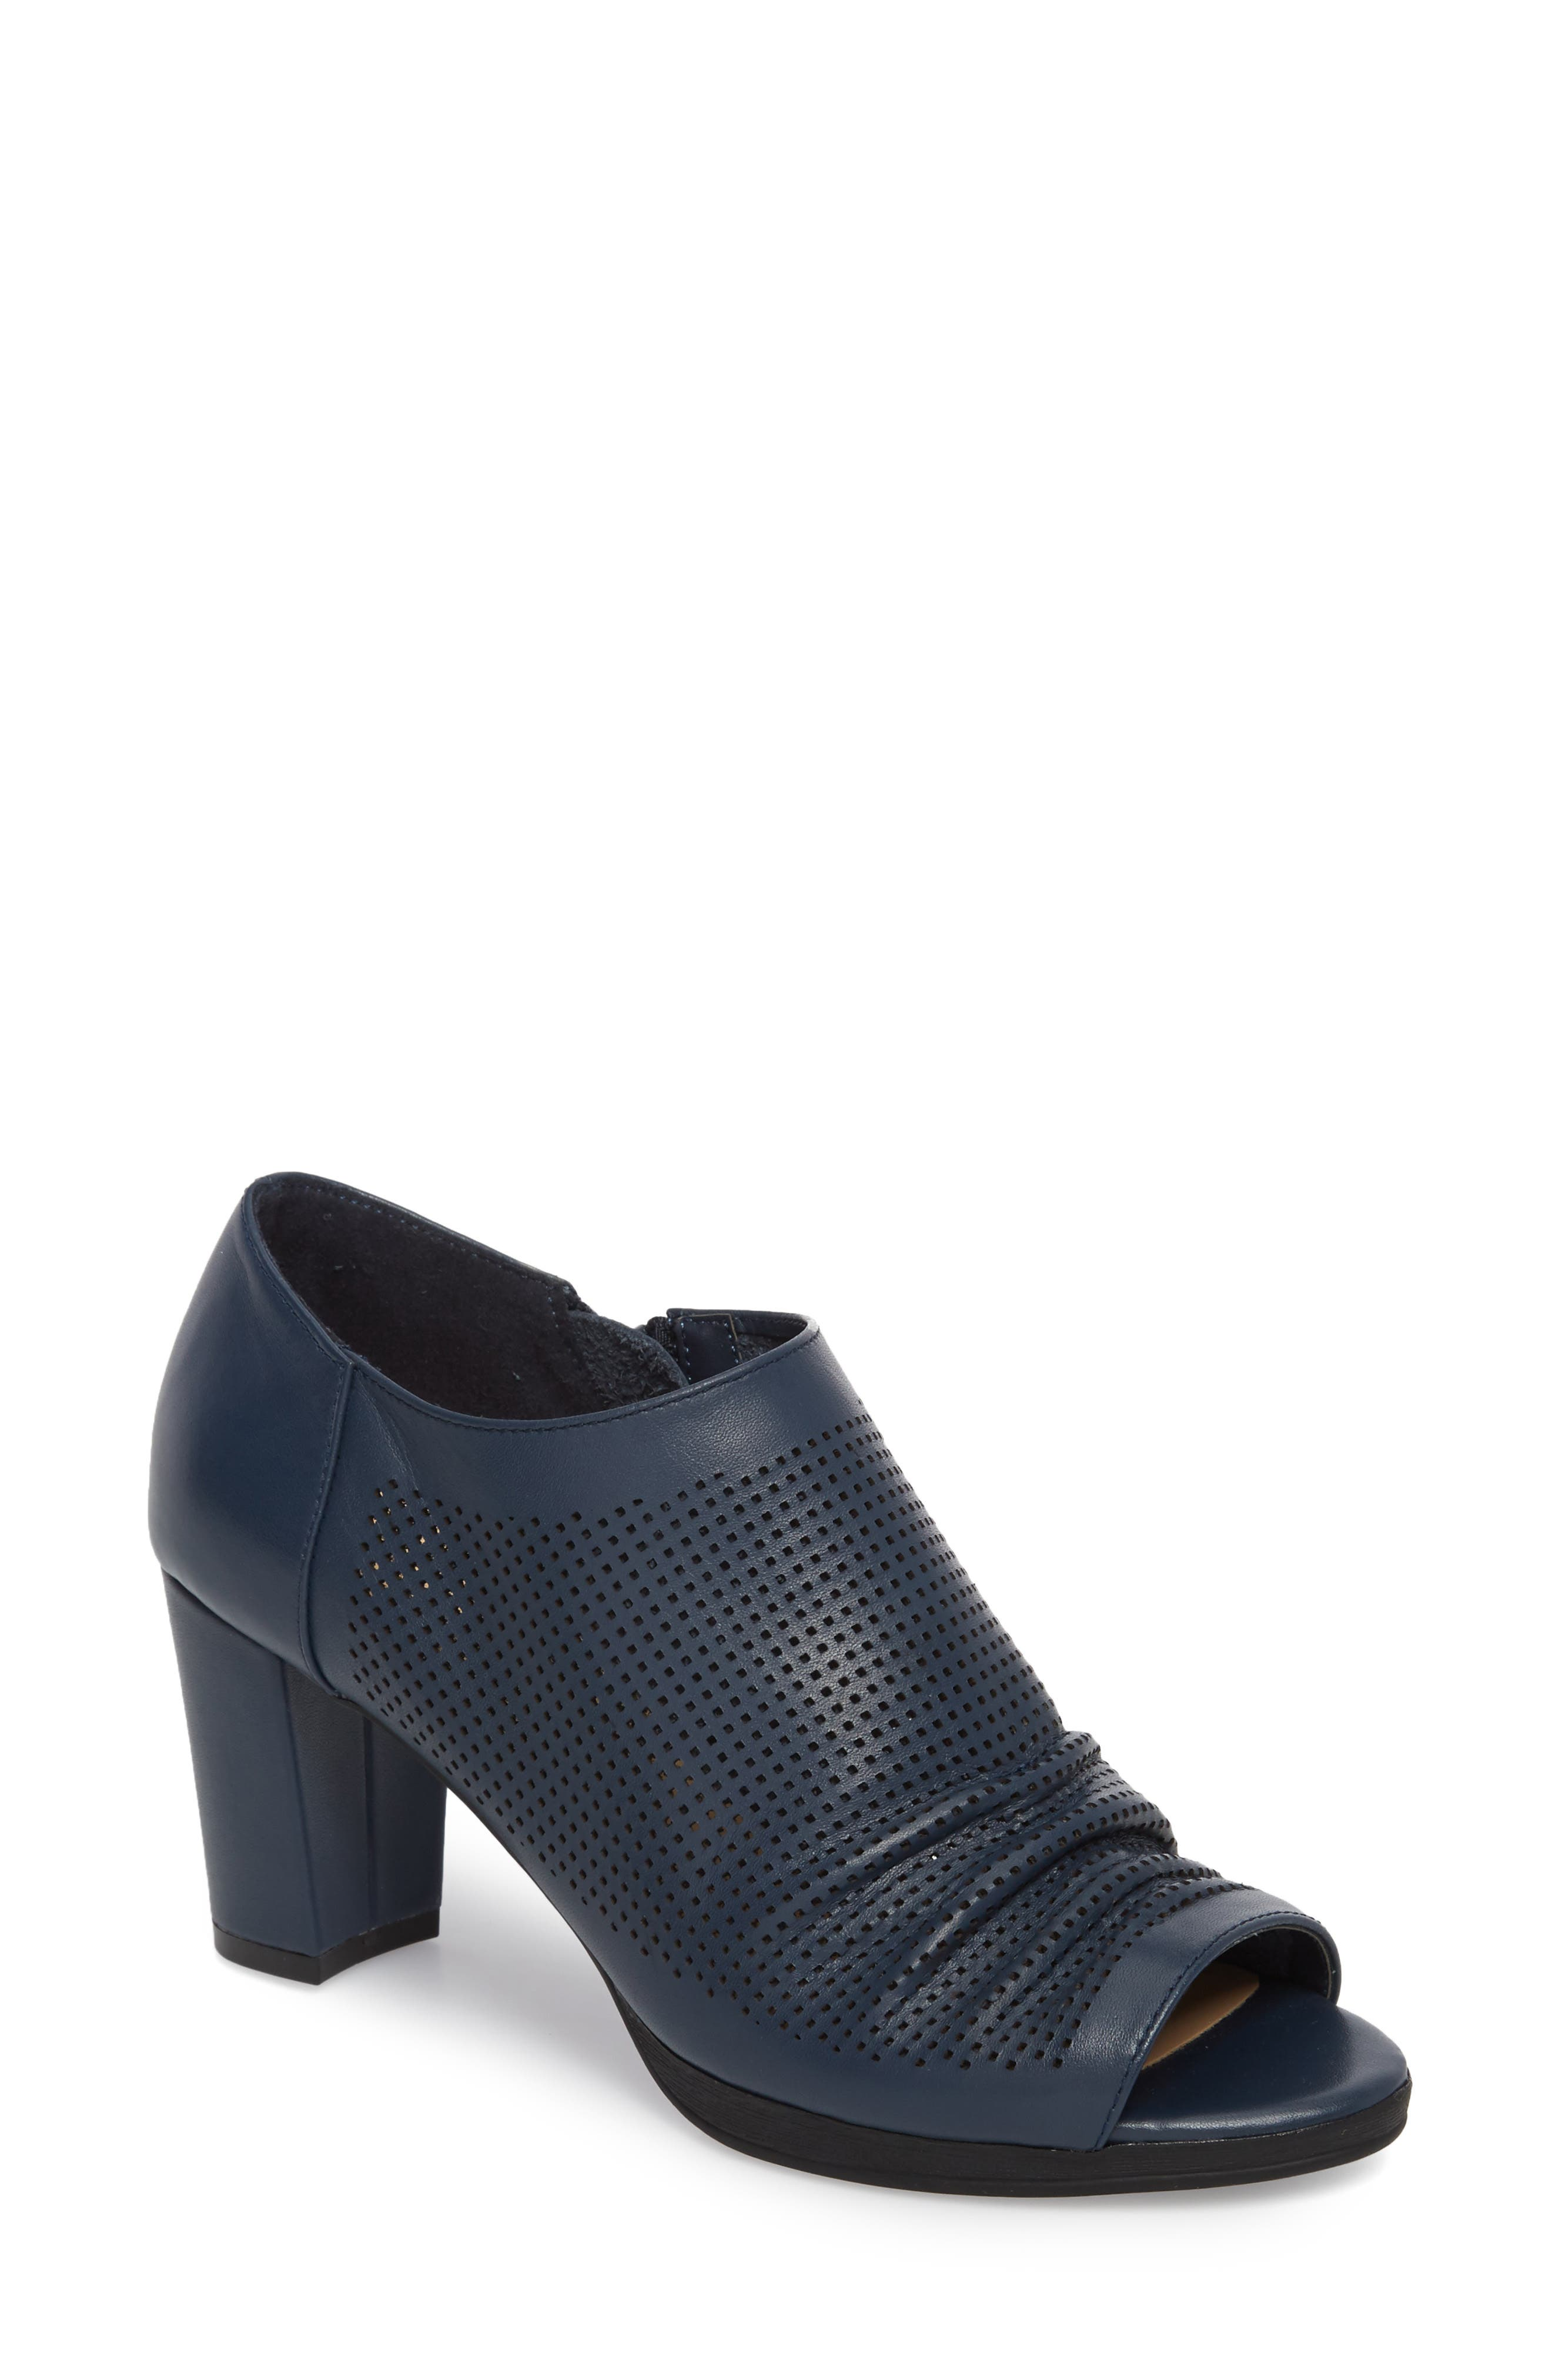 Liza Open Toe Bootie,                         Main,                         color, Navy Leather